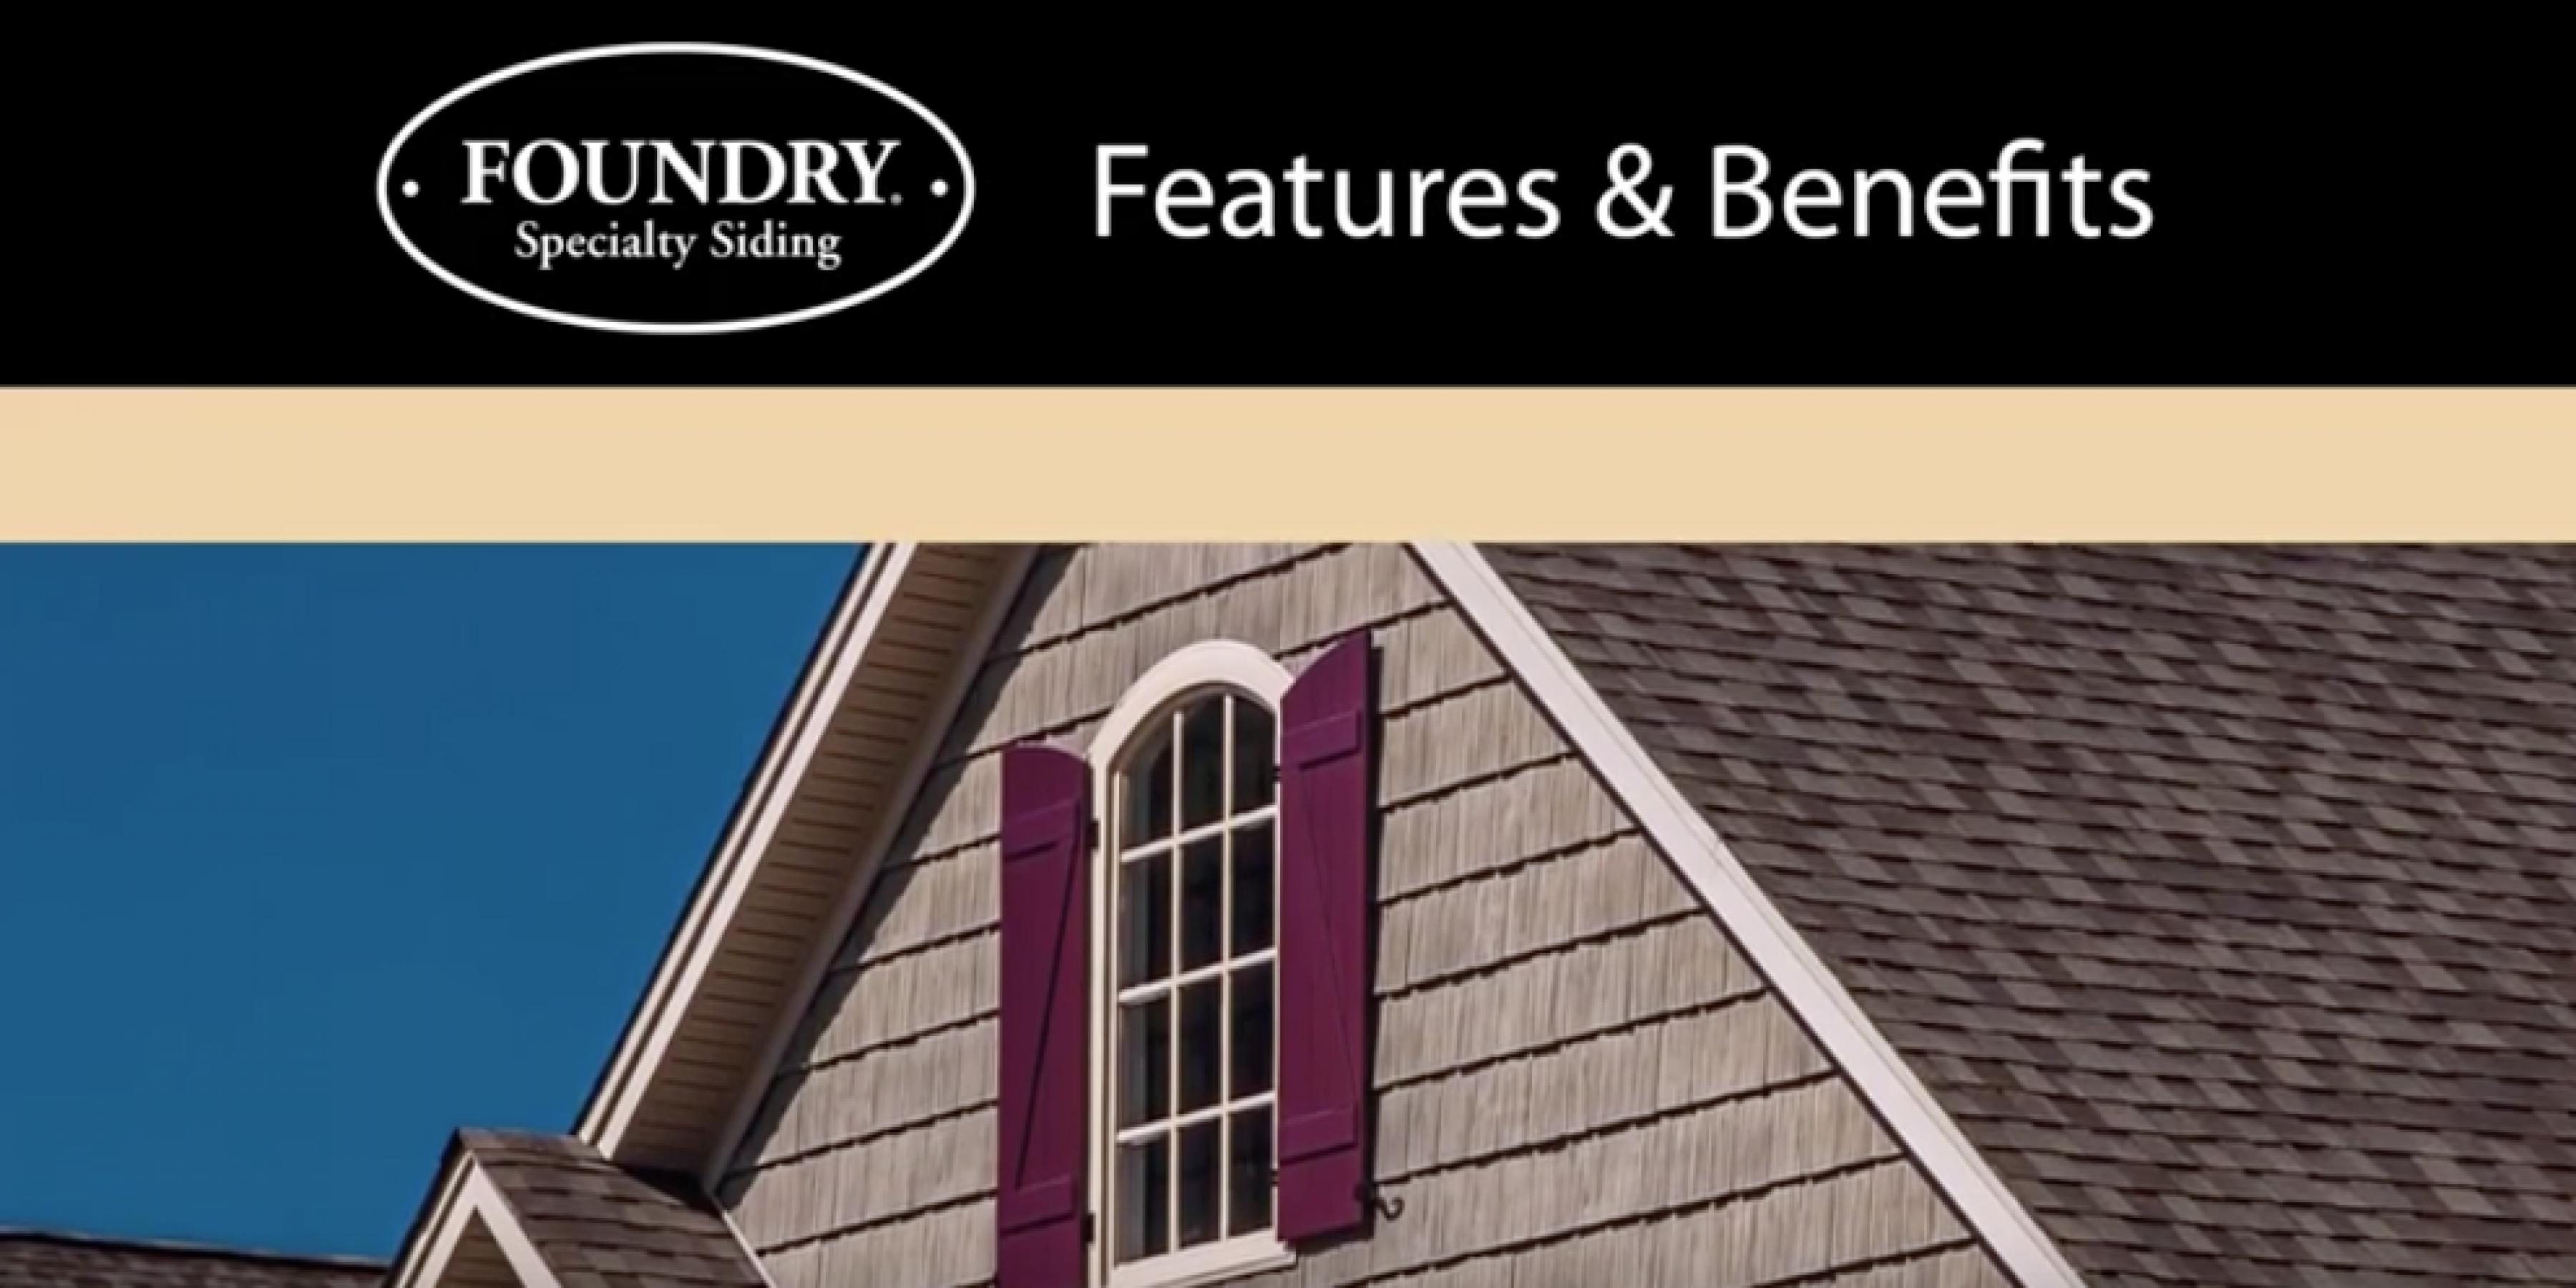 Foundry Specialty Siding Features & Benefits